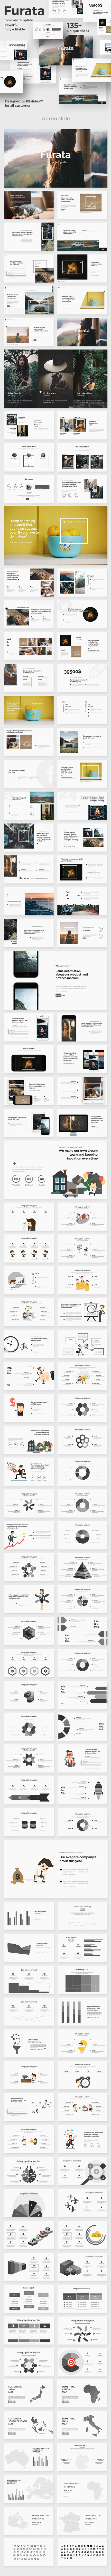 Furata Creative Powerpoint Template - Creative PowerPoint Templates